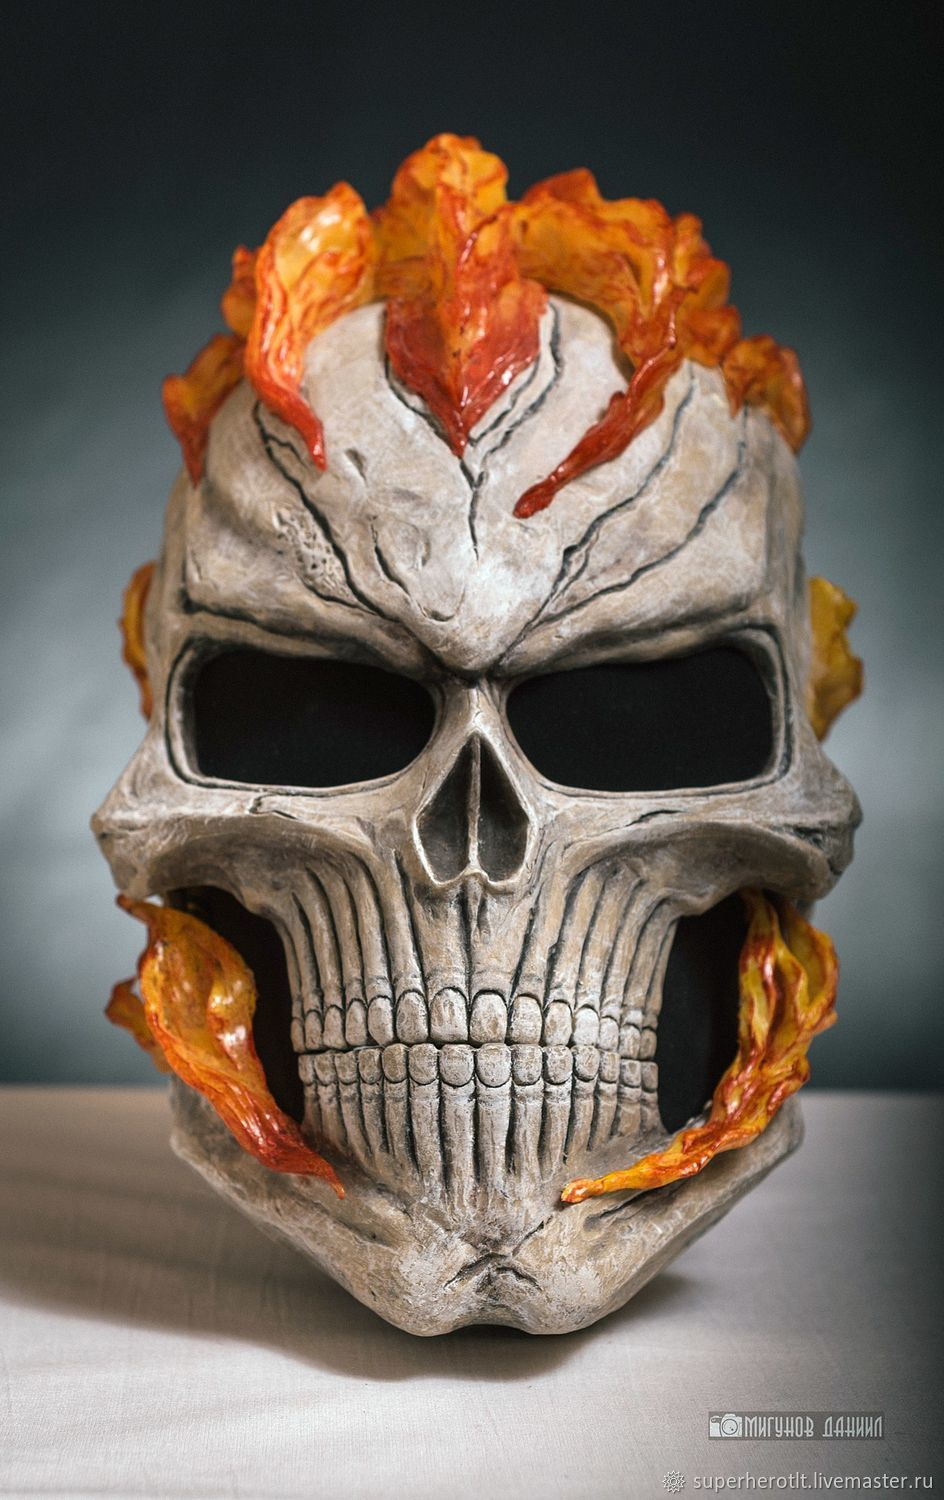 Helmet Ghost Rider From The Tv Series Agents Of Shield